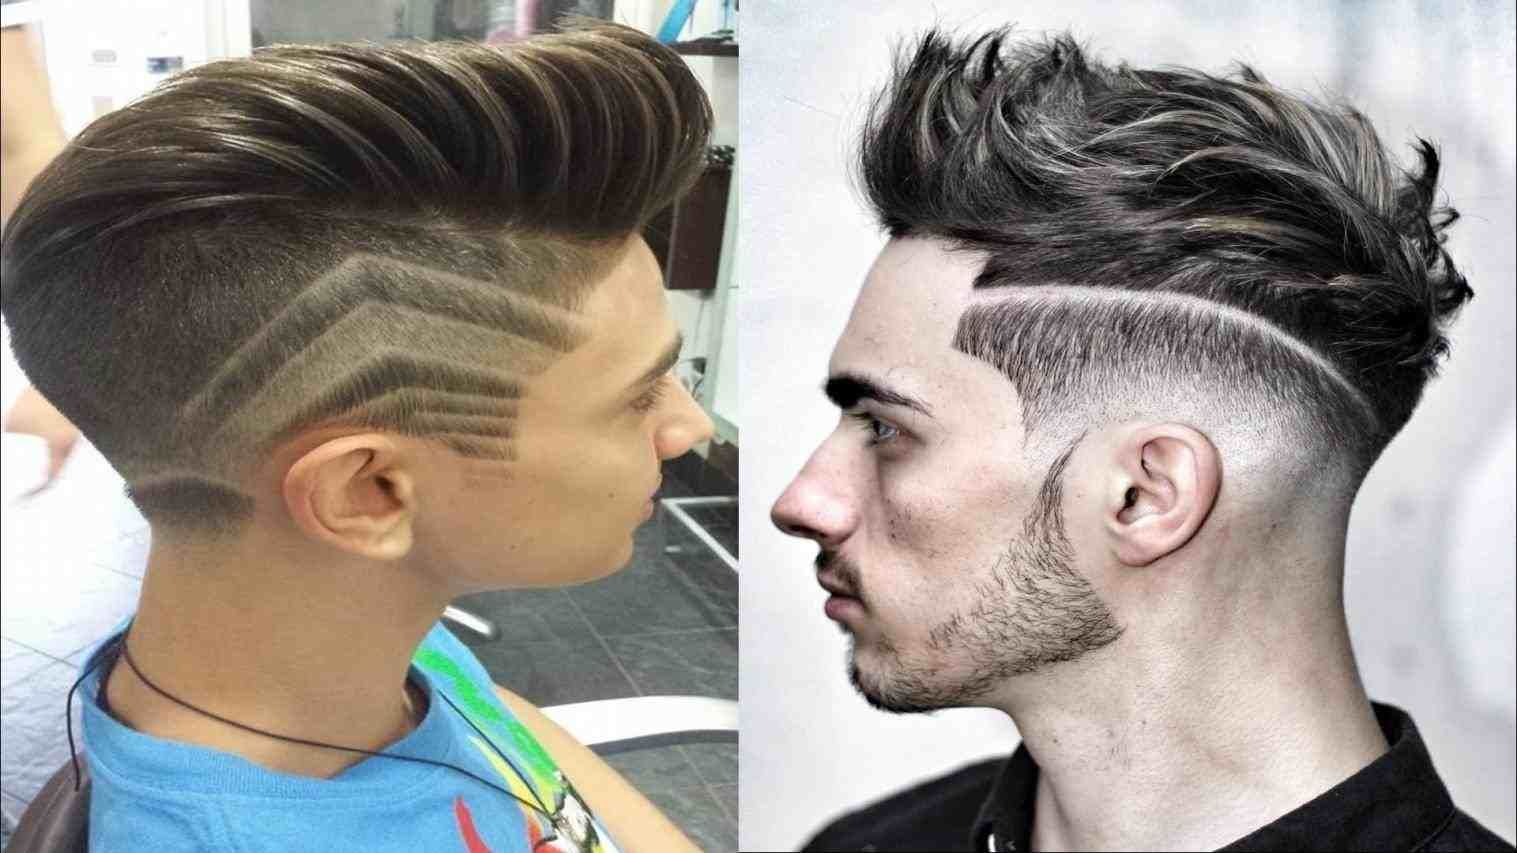 Balayagehair Club Nbspthis Website Is For Sale Nbspbalayagehair Resources And Information Undercut Hairstyles Hair Styles Boy Hairstyles